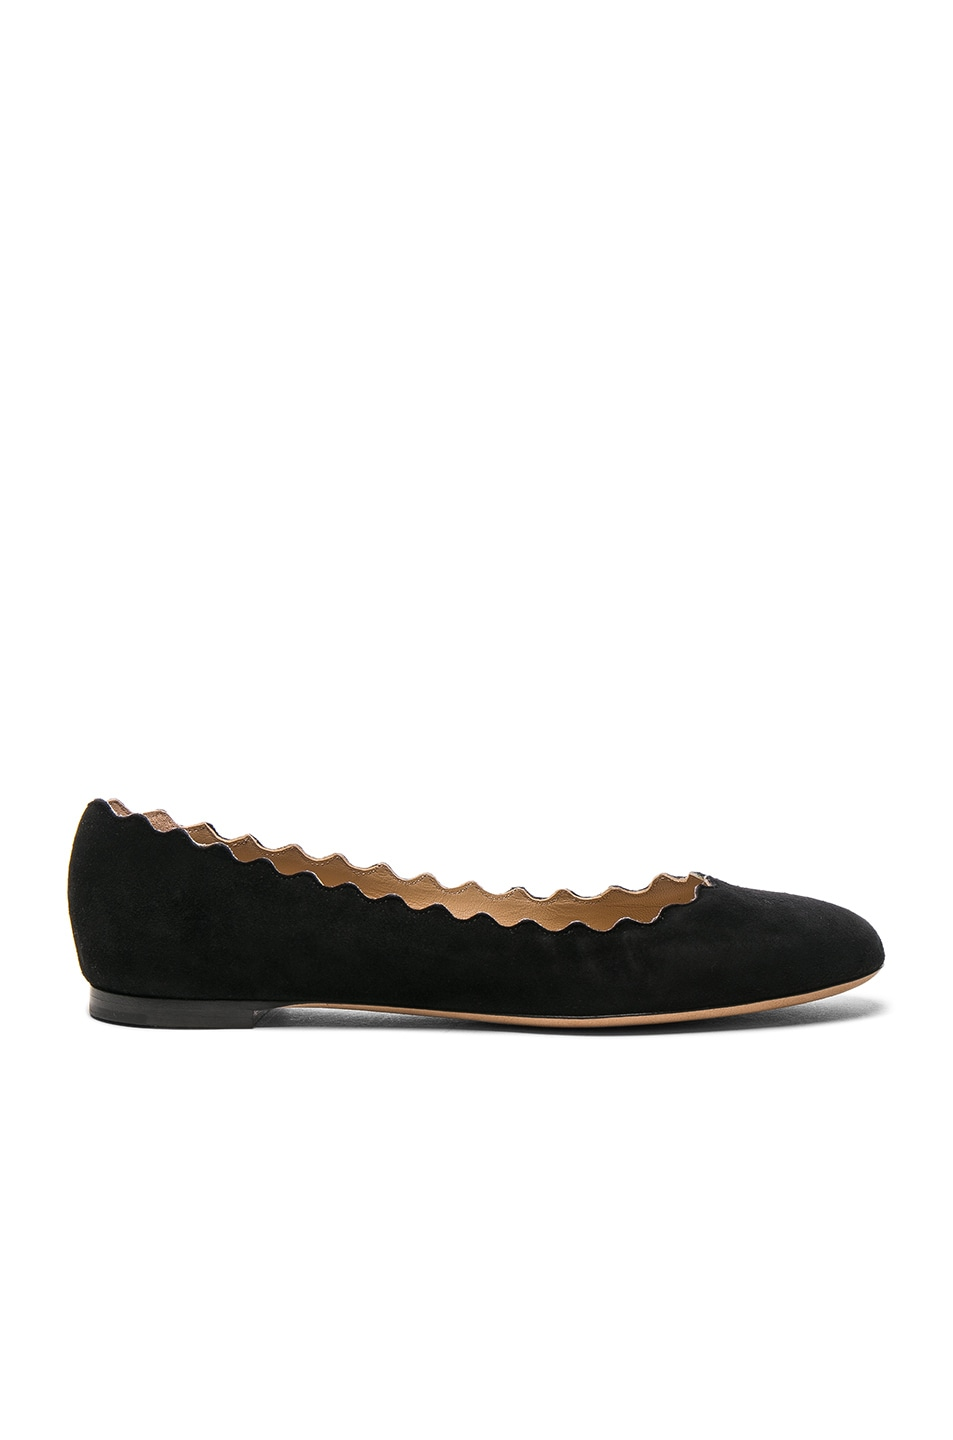 Image 1 of Chloe Suede Lauren Flats in Black